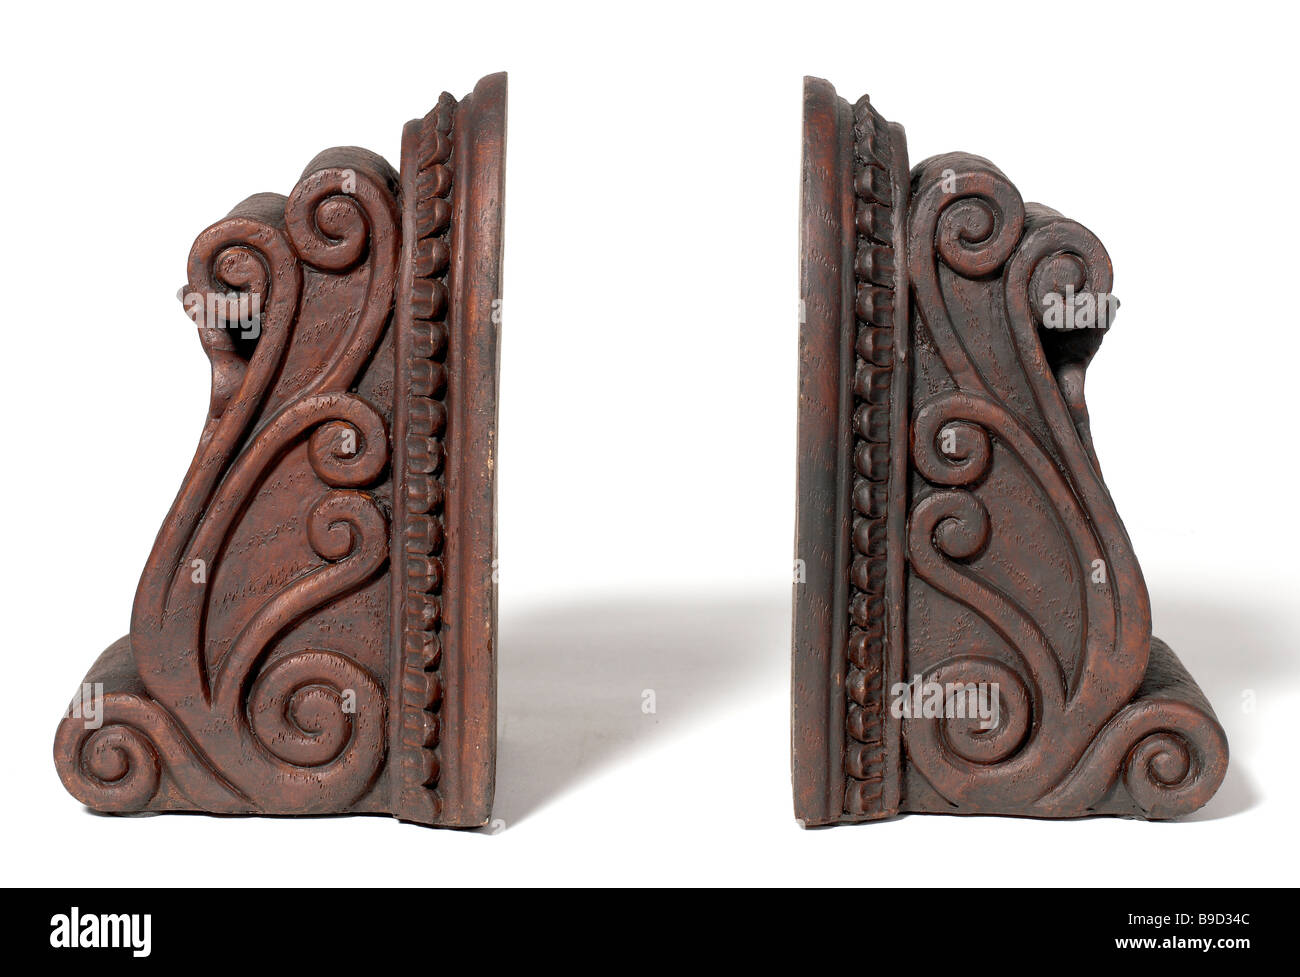 Brown Wooden Bookends - Stock Image